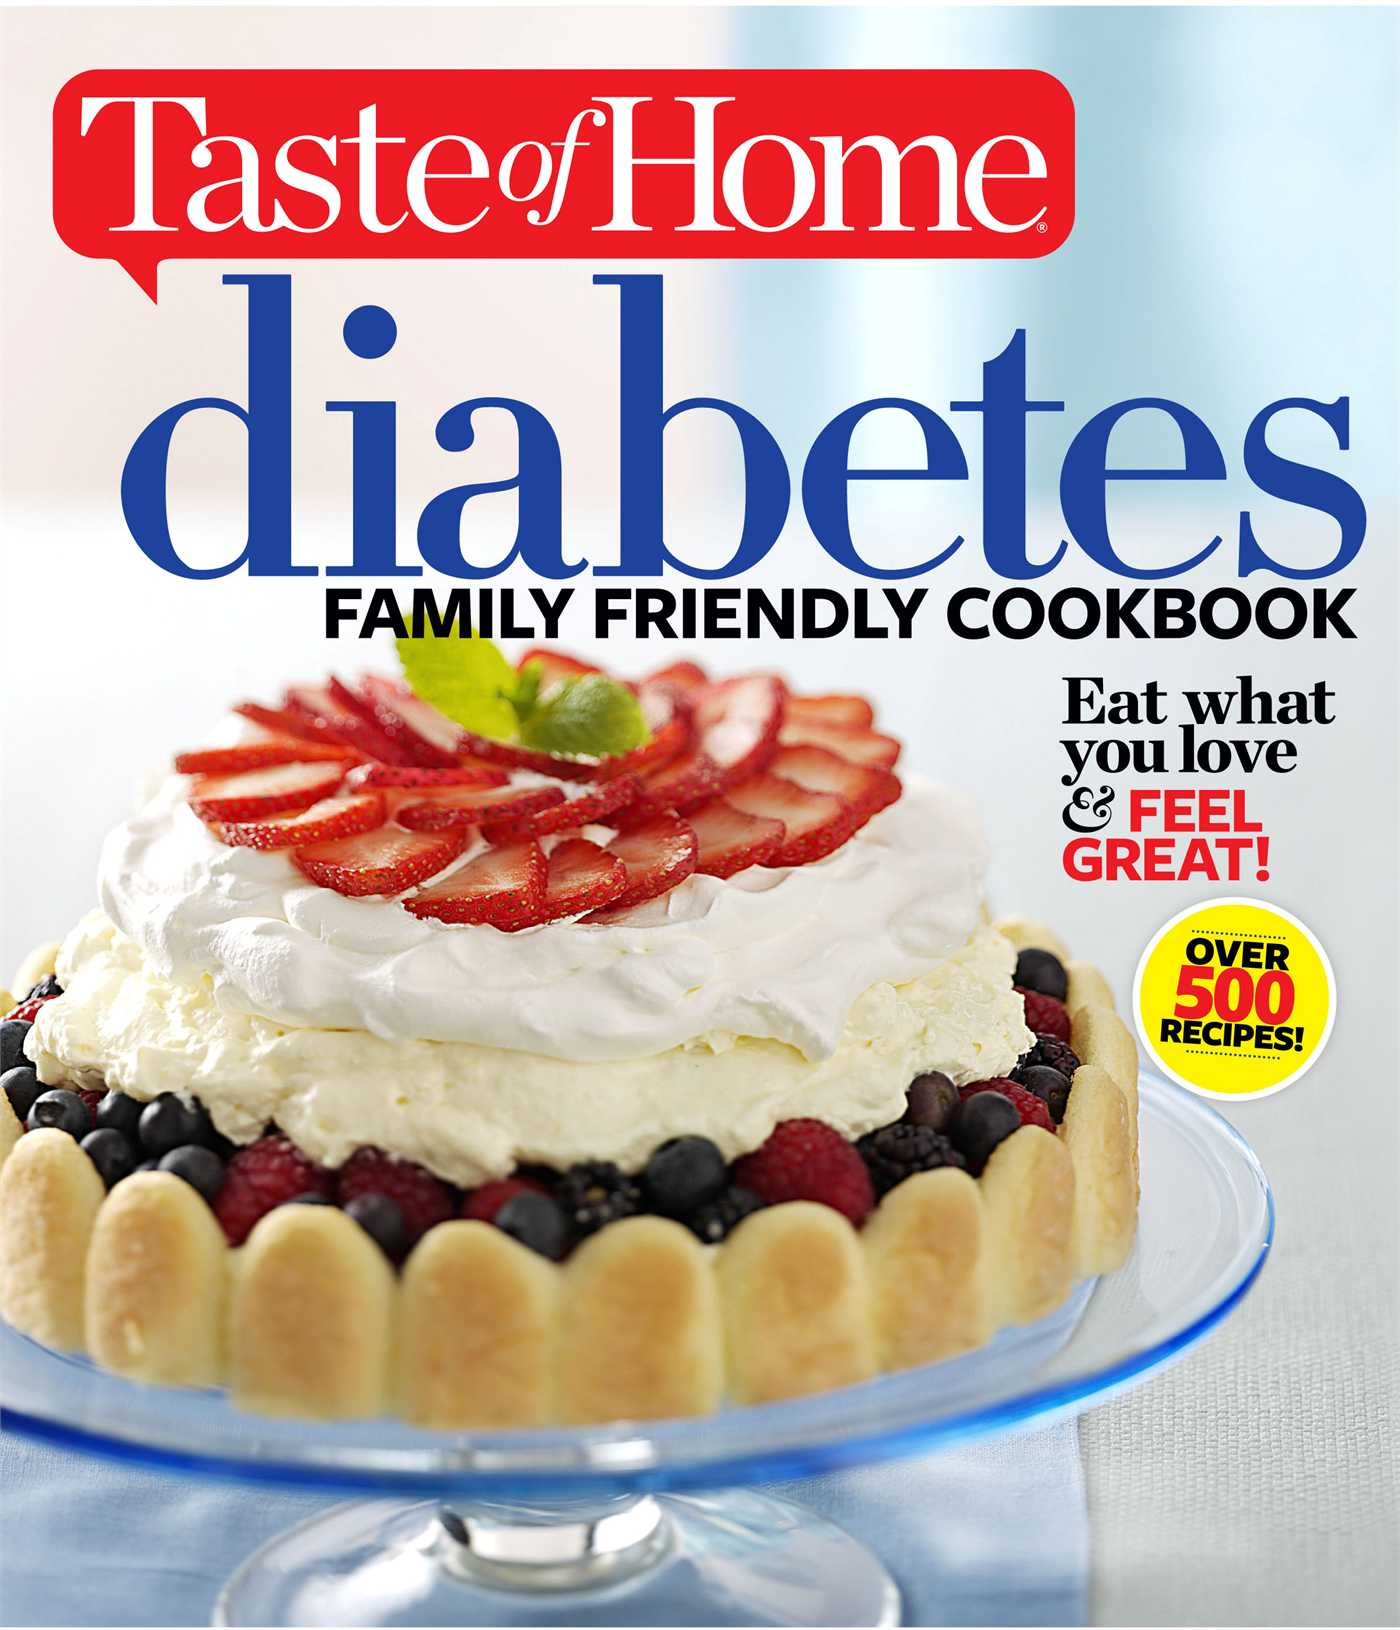 Taste of home diabetes family friendly cookbook 9781617652660 hr